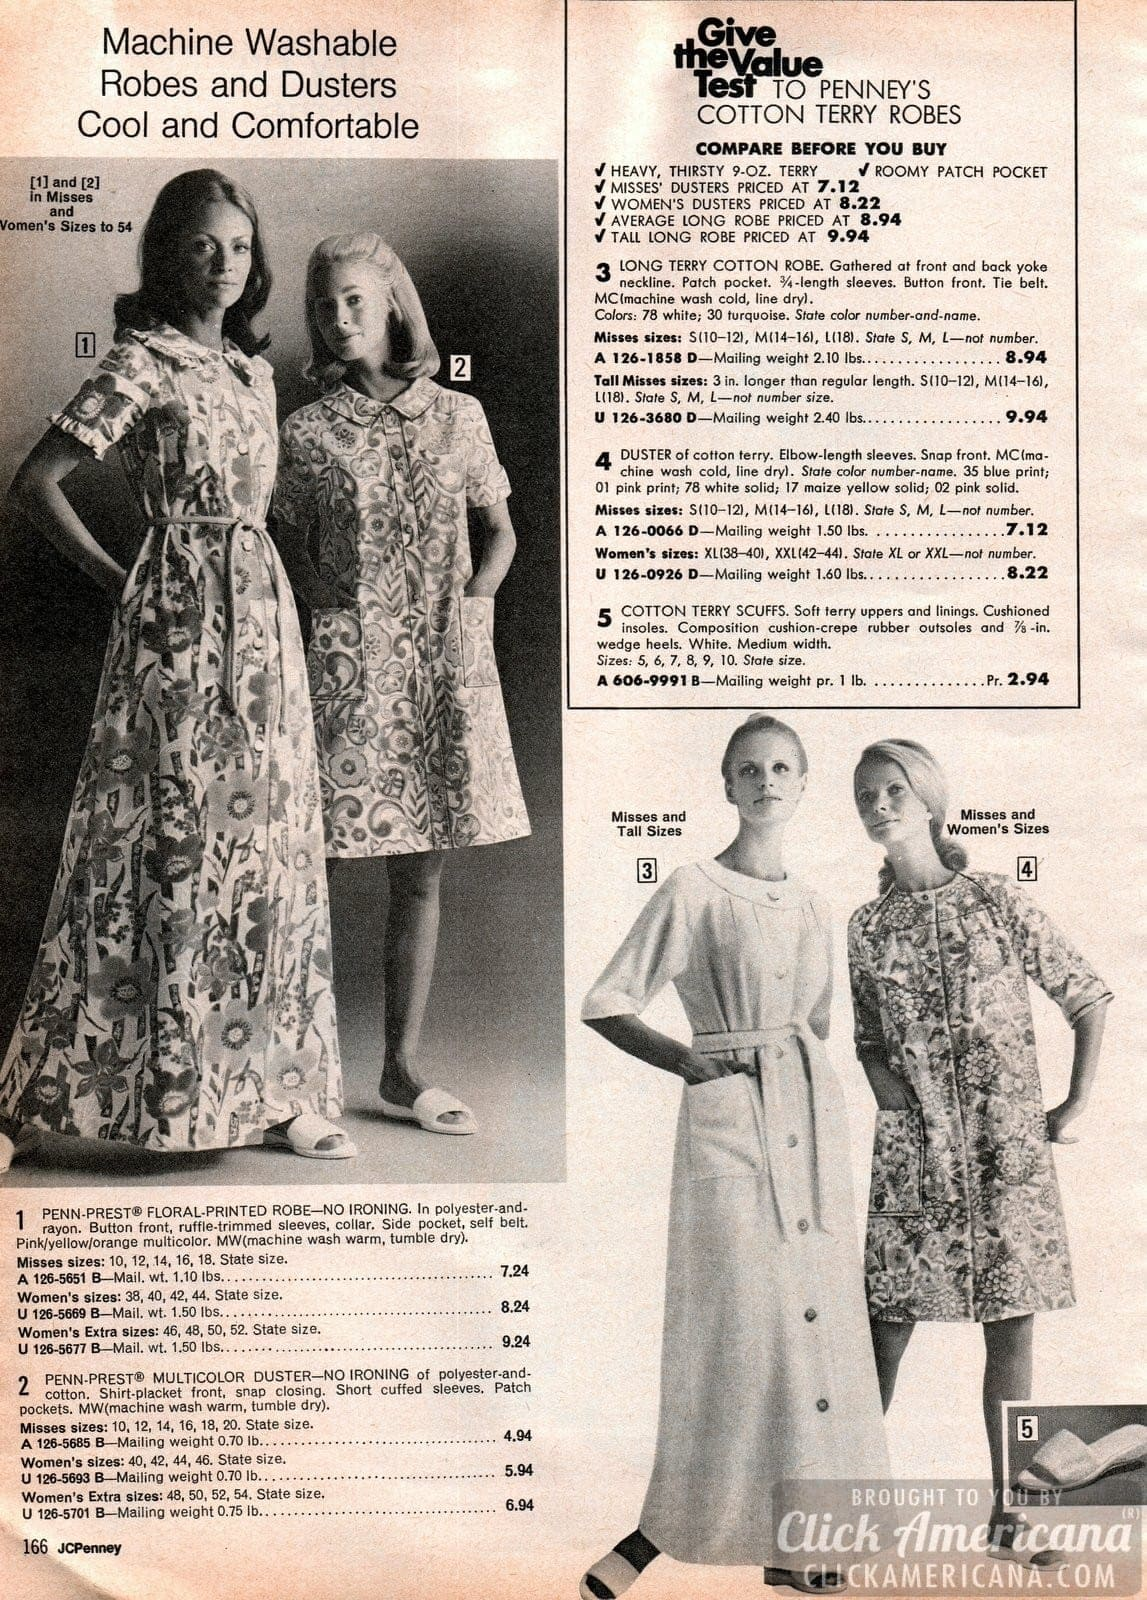 Retro 70s sleepwear for women (2)